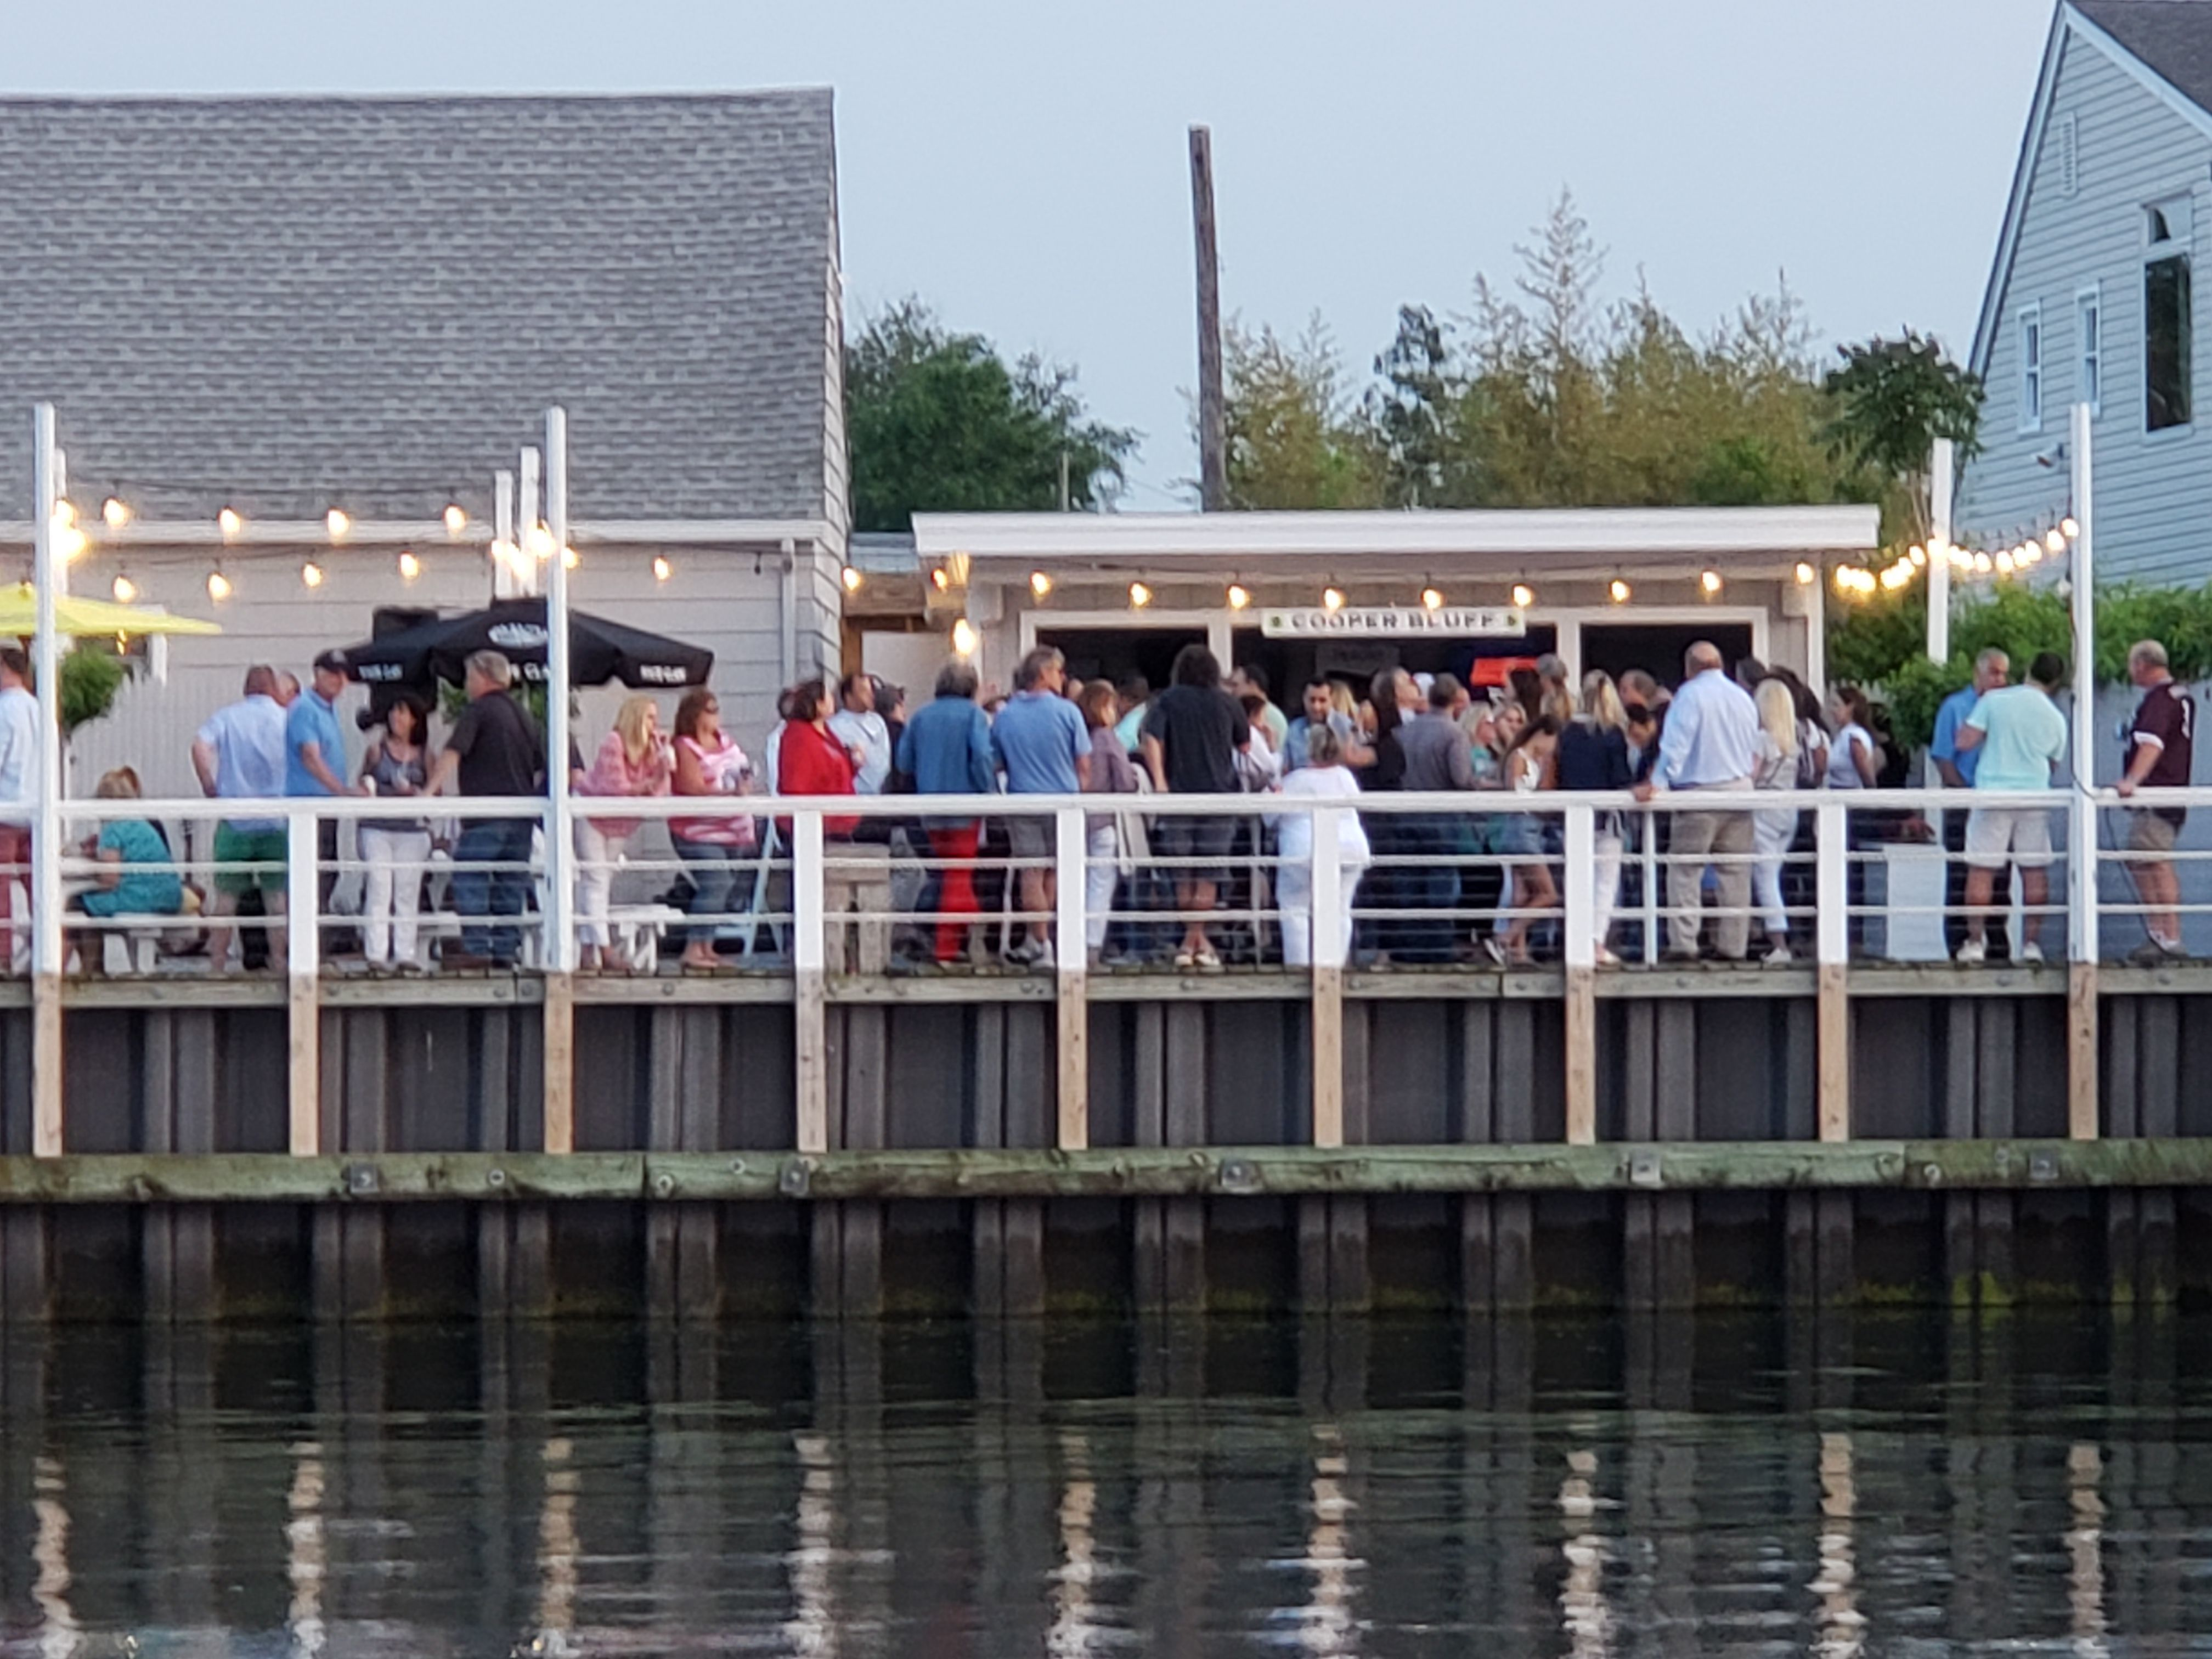 Oyster Bay Marine Center & Cooper Bluff in Oyster Bay, NY, United ...